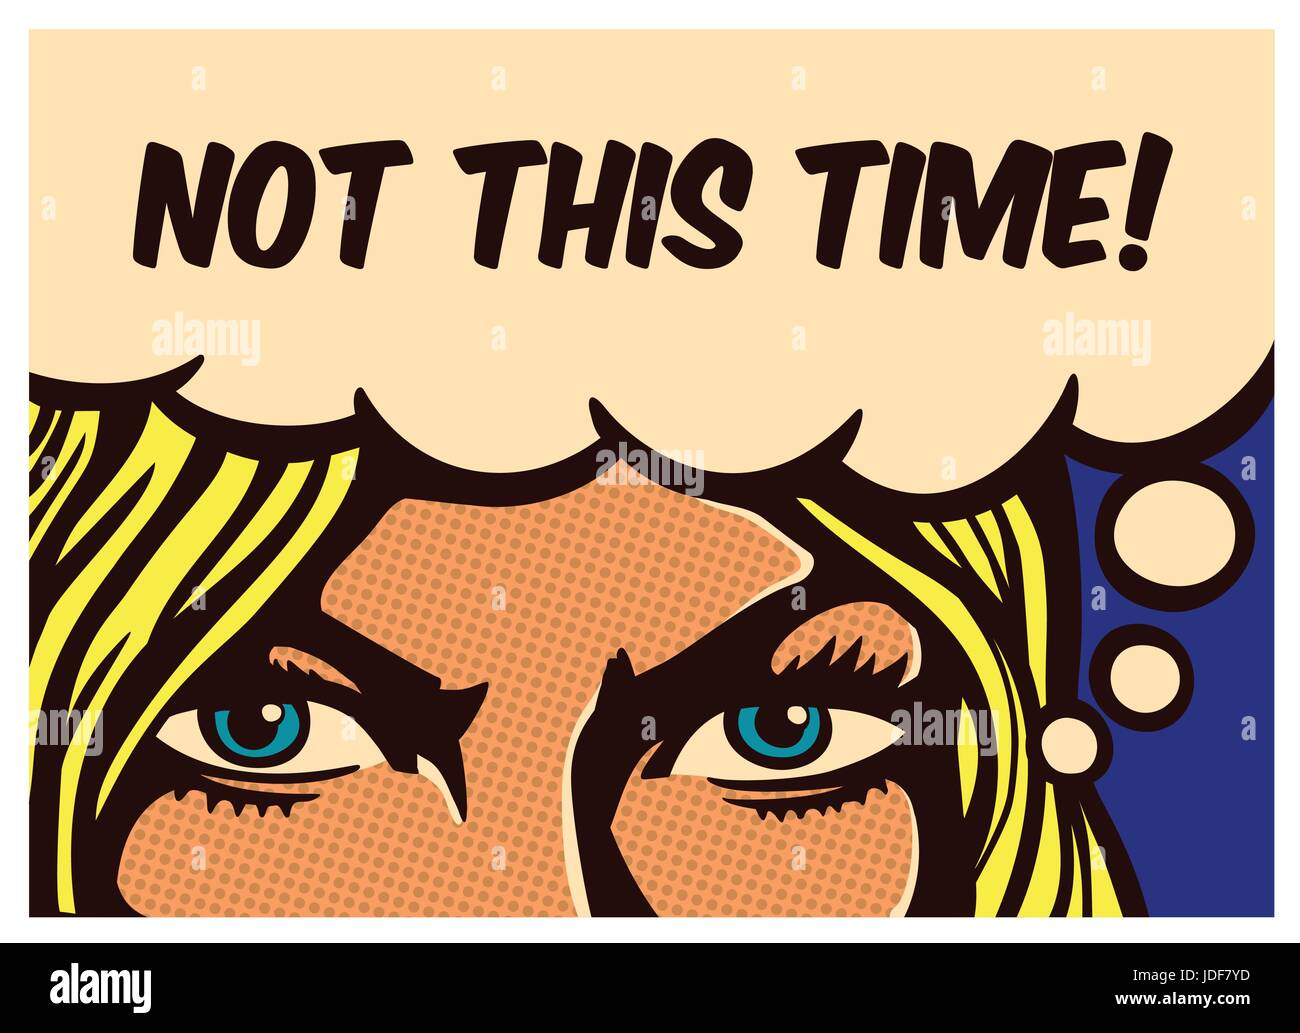 Not this Time! Pop art comic book panel blond woman with resolute eyes determined to face adversities and fight, - Stock Image